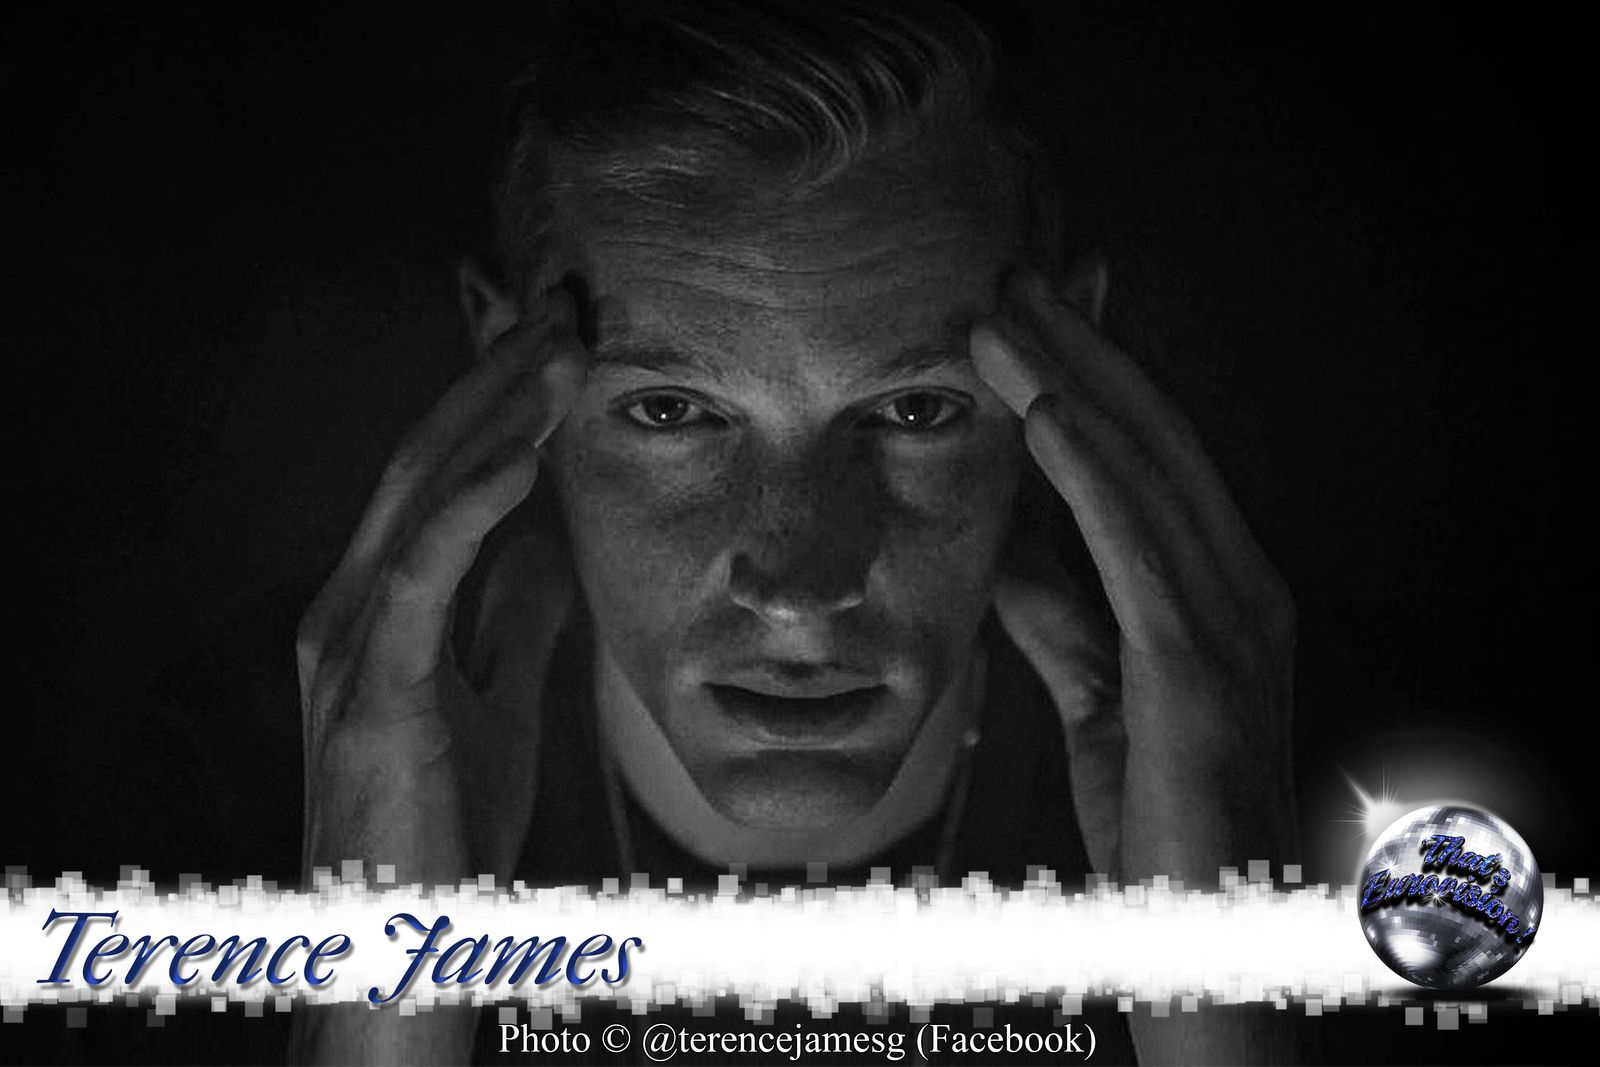 Terence James - France made me what I am today